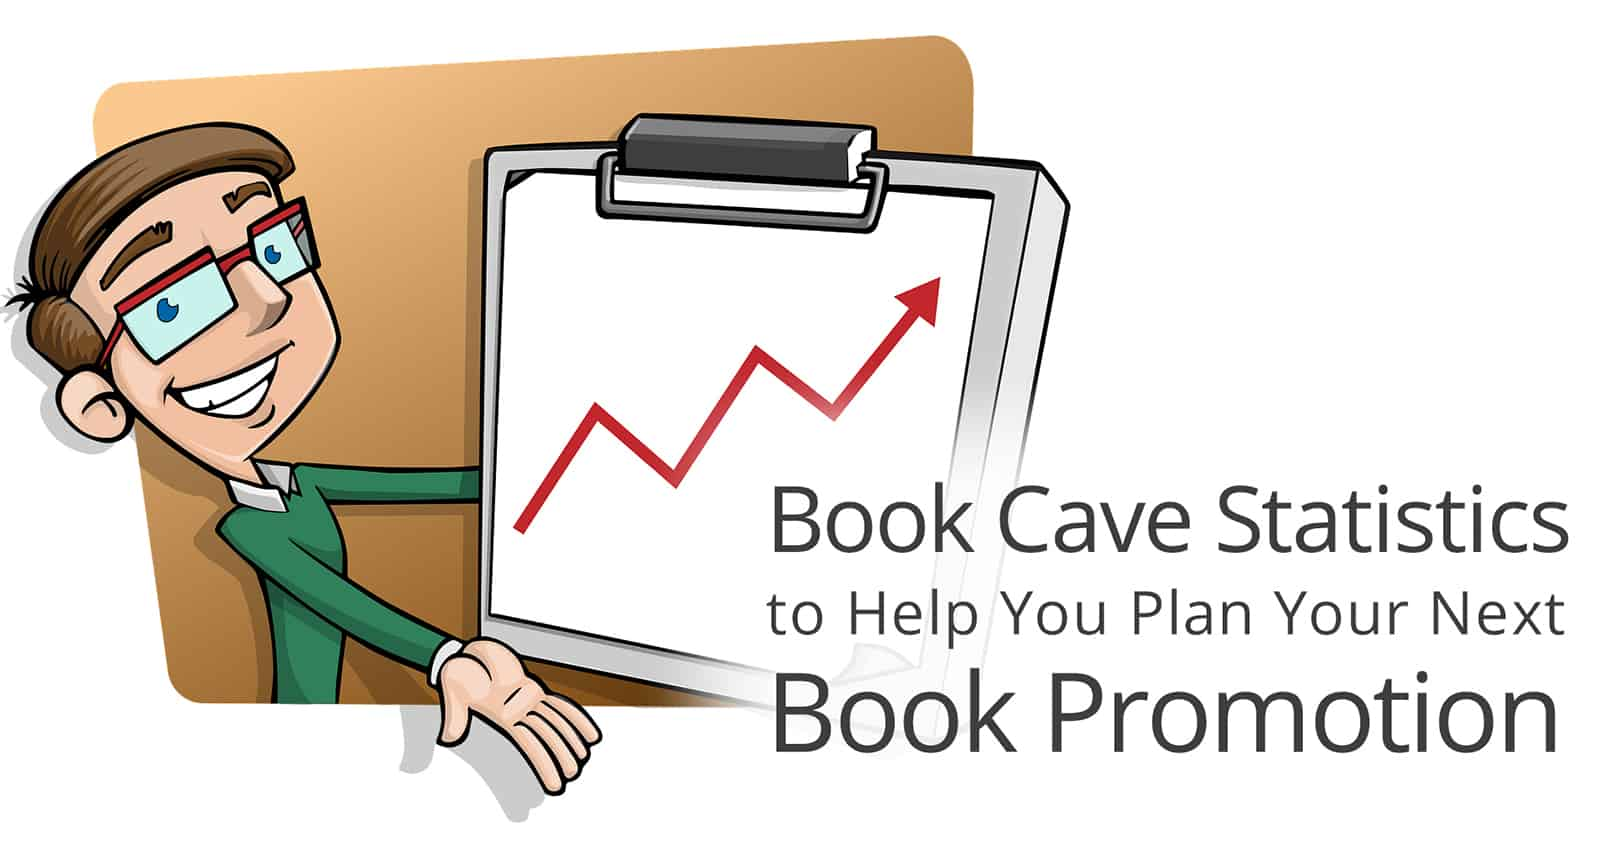 book cave statistics to help plan book promotion